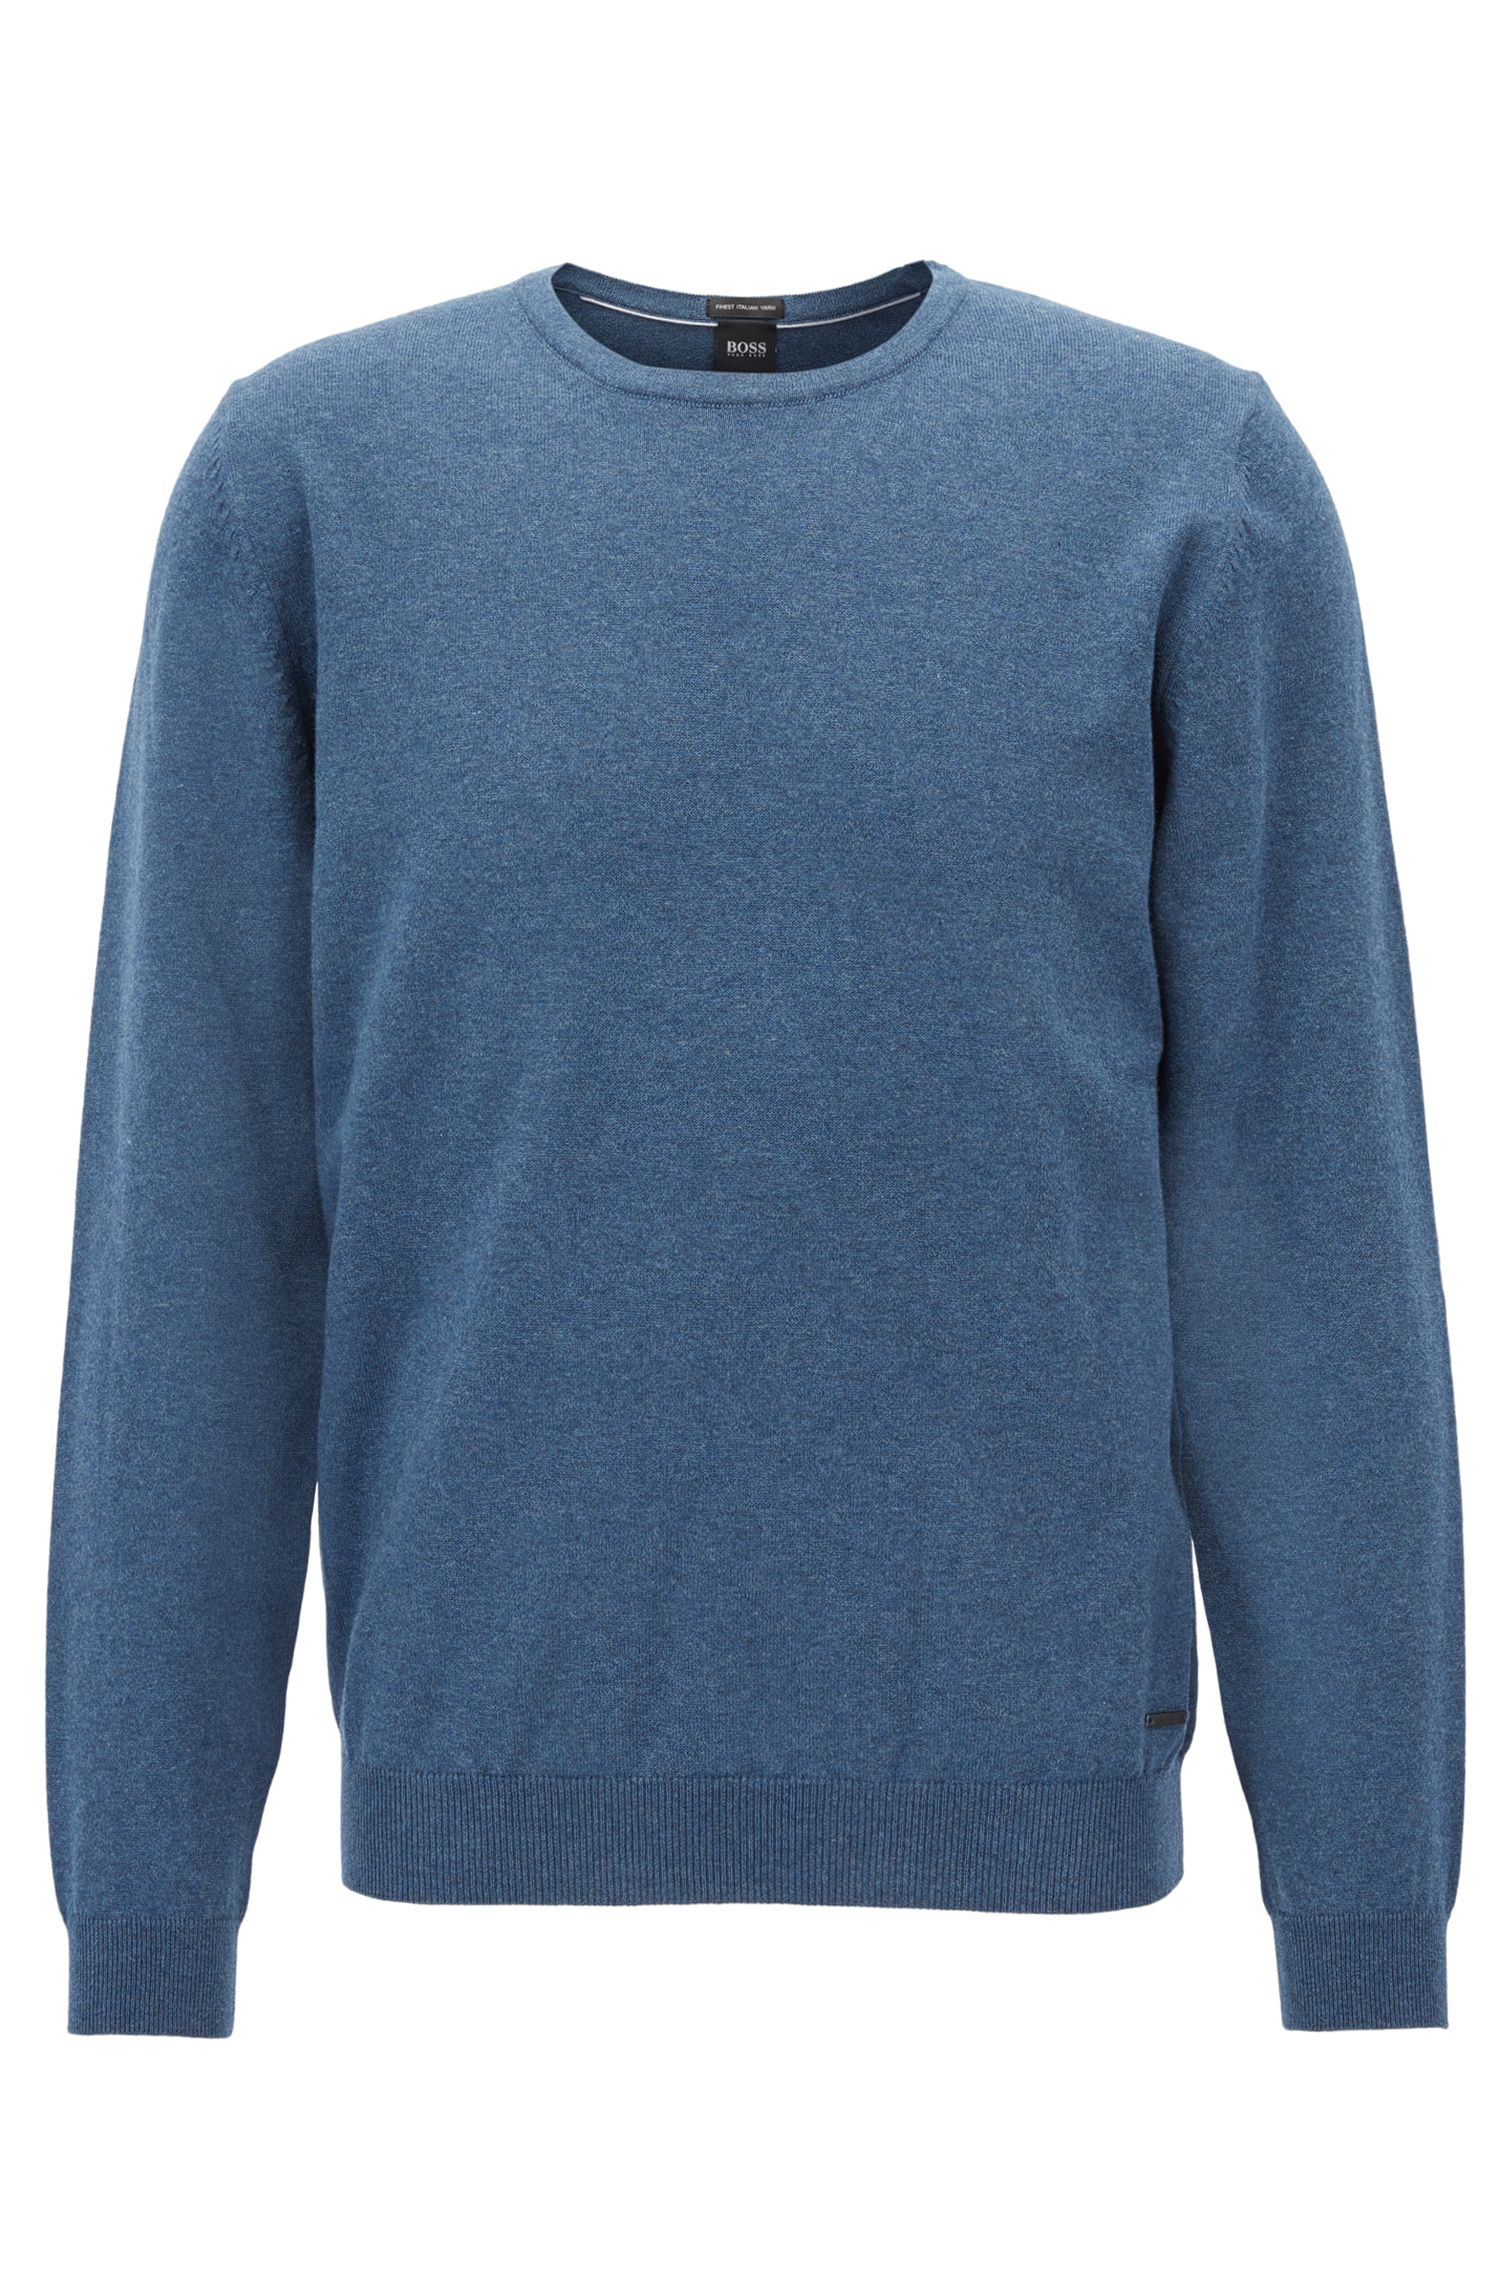 Crew-neck sweater in washed Egyptian cotton